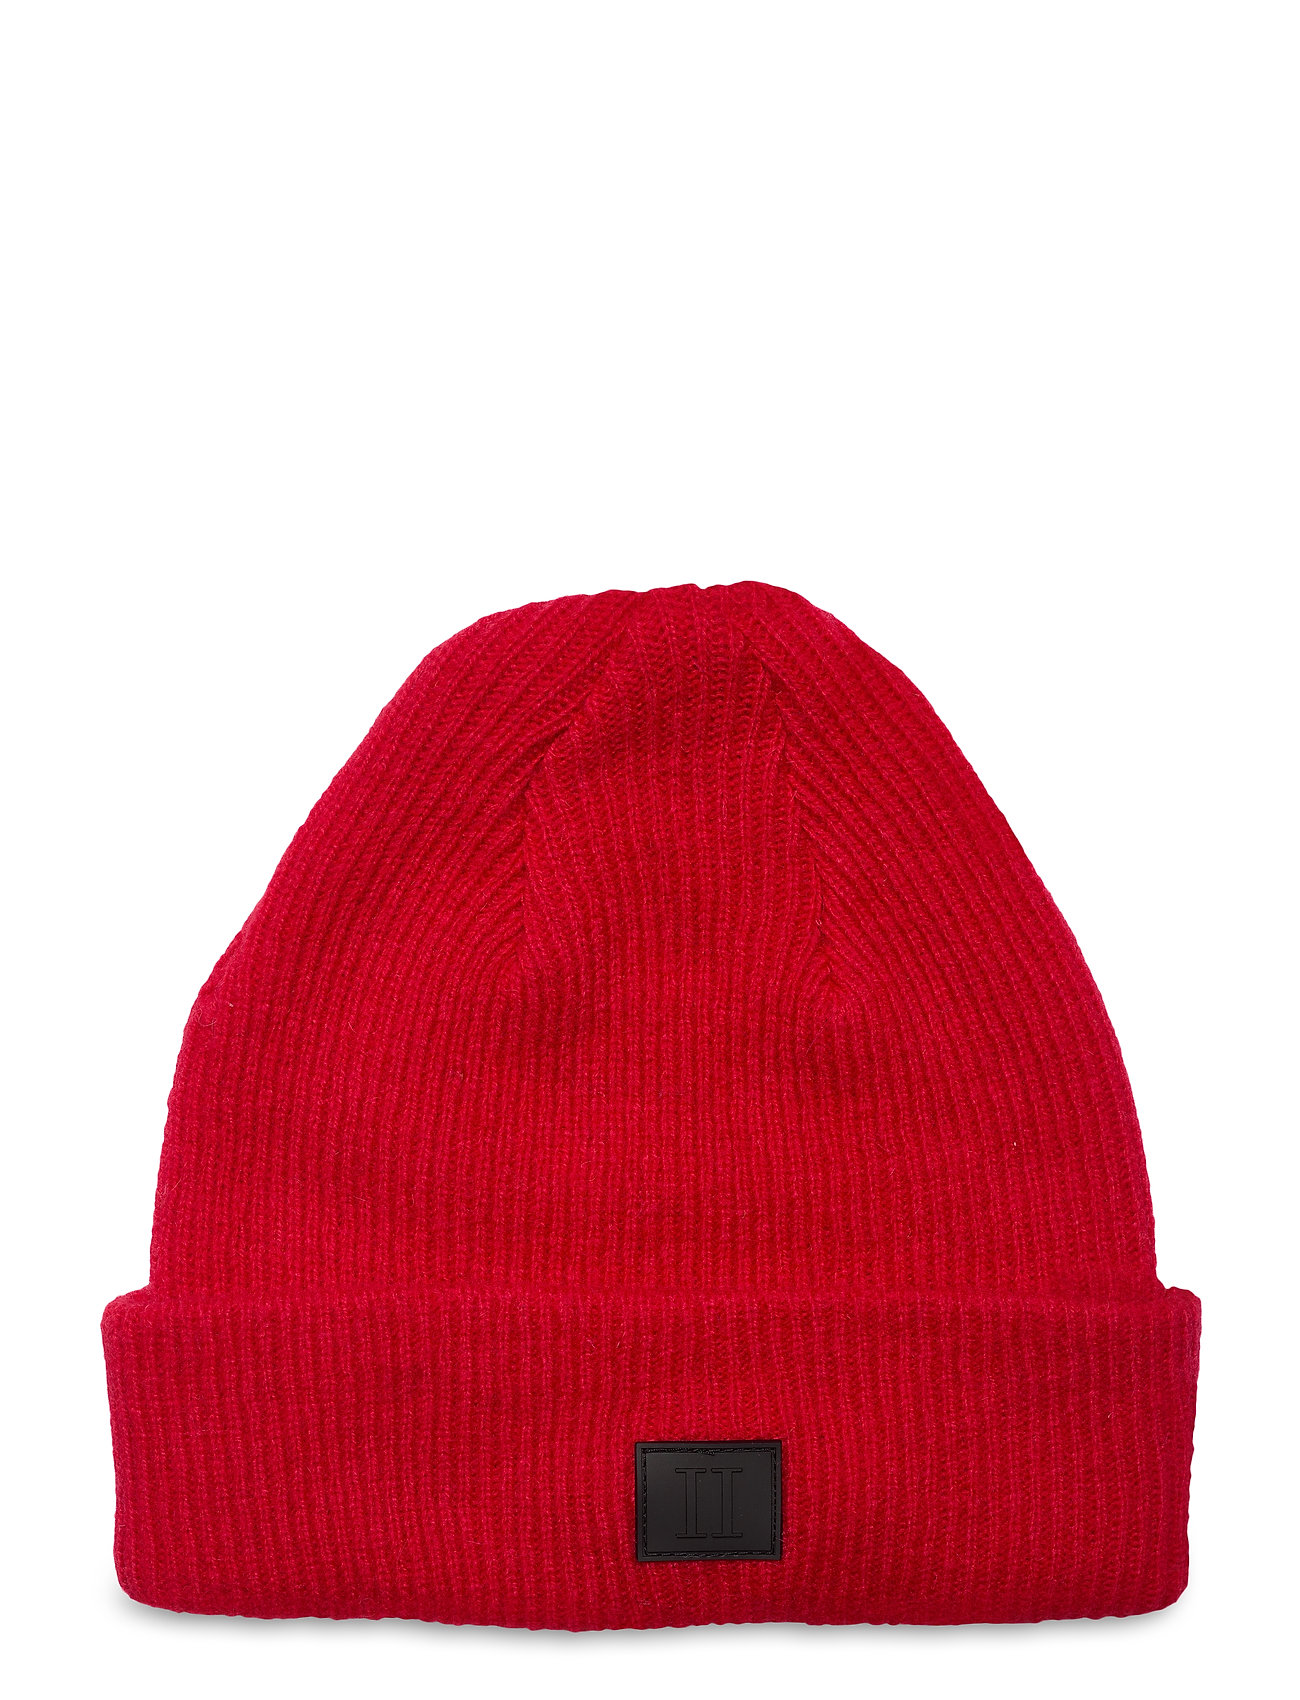 Image of Lambswool Beanie Accessories Headwear Beanies Rød Les Deux (3466073217)